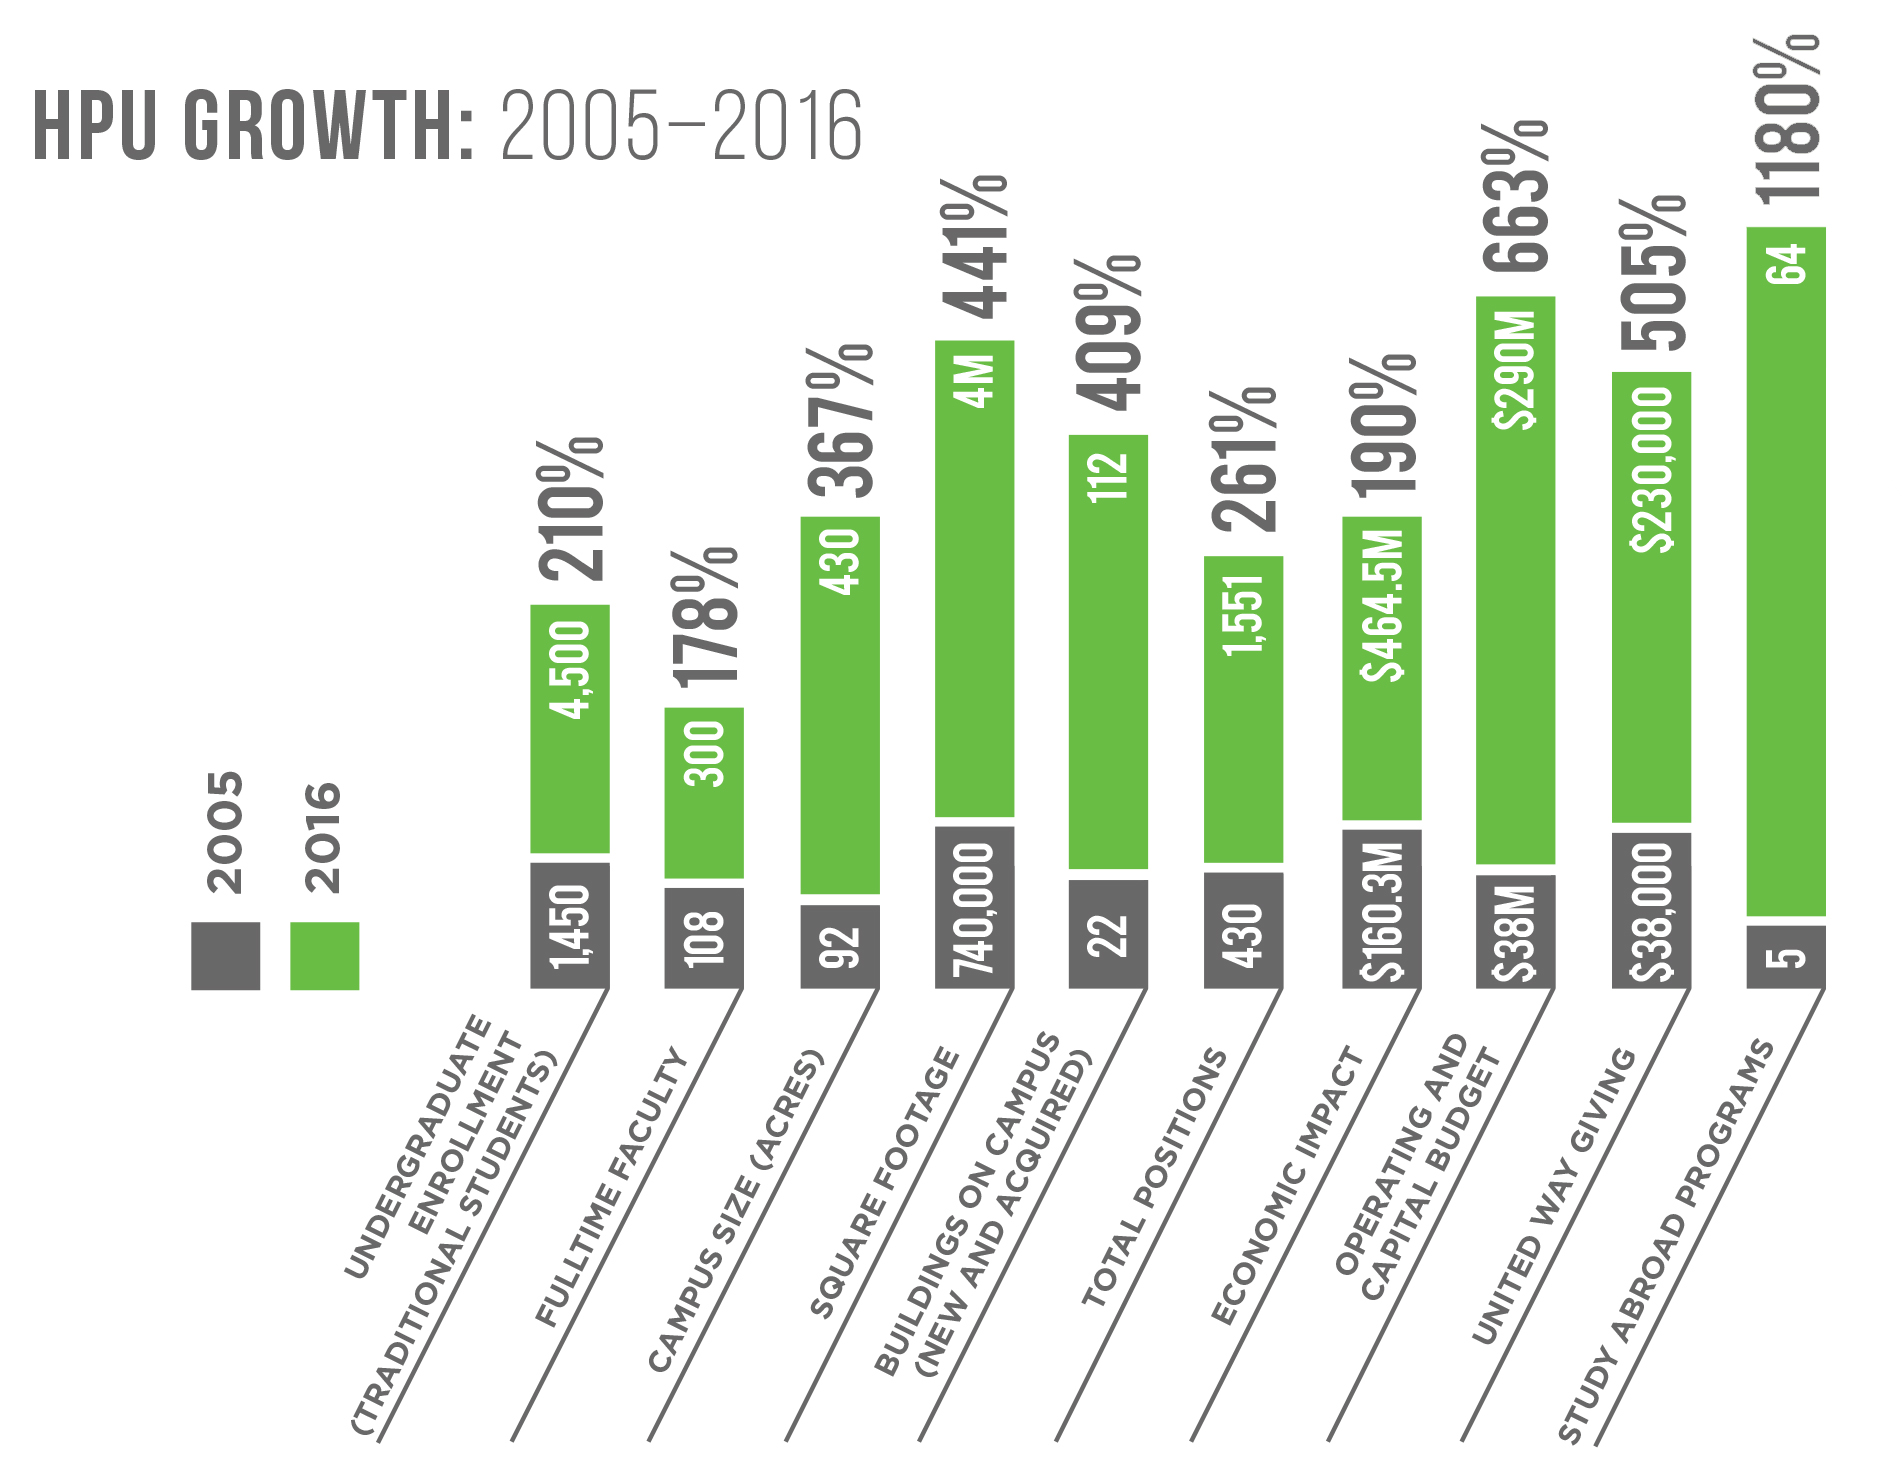 Growth Chart, 2005-2016 - Fall 2016 Magazine